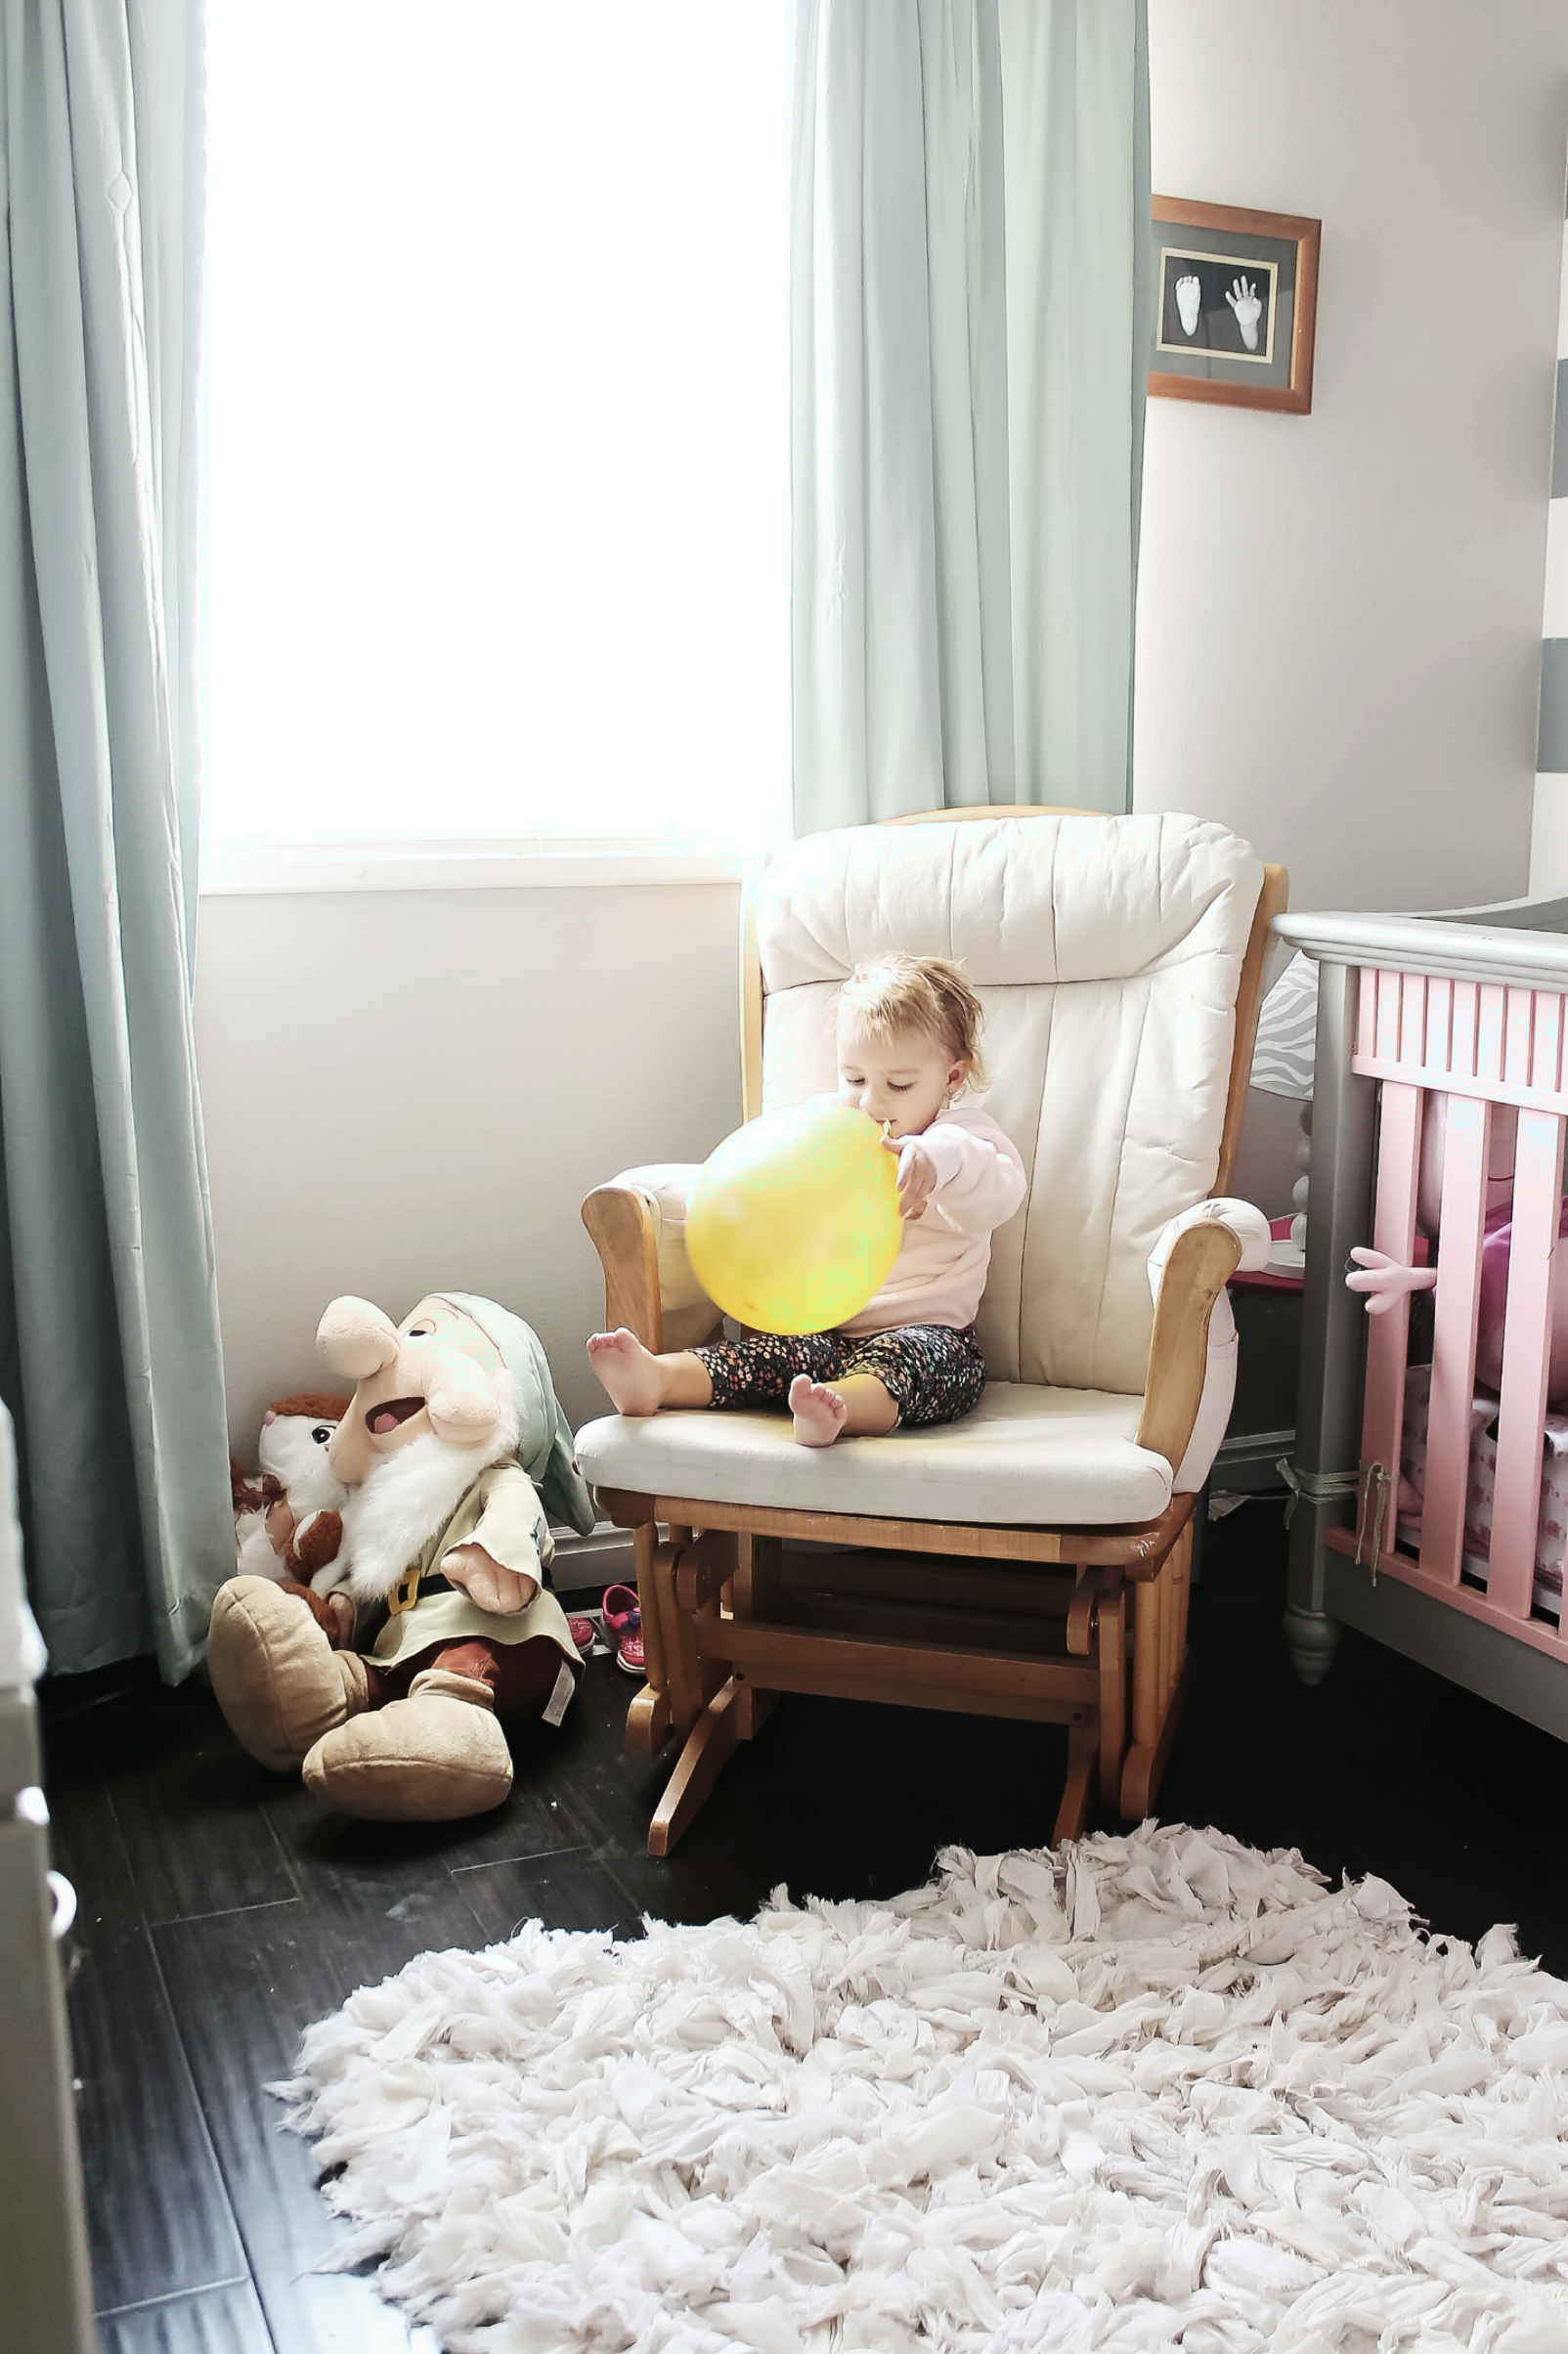 7 Tips To Create A Sleeping Schedule for Babies